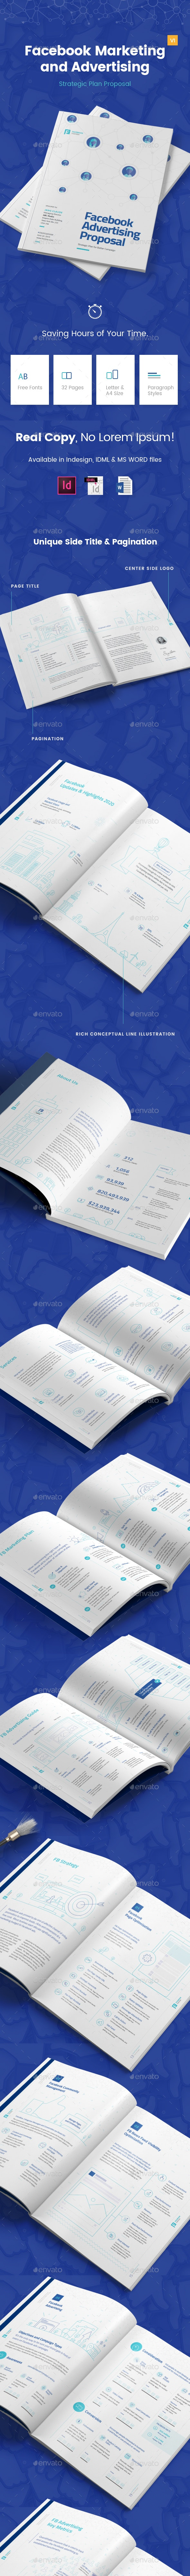 Facebook Marketing and Advertising Proposal - Proposals & Invoices Stationery